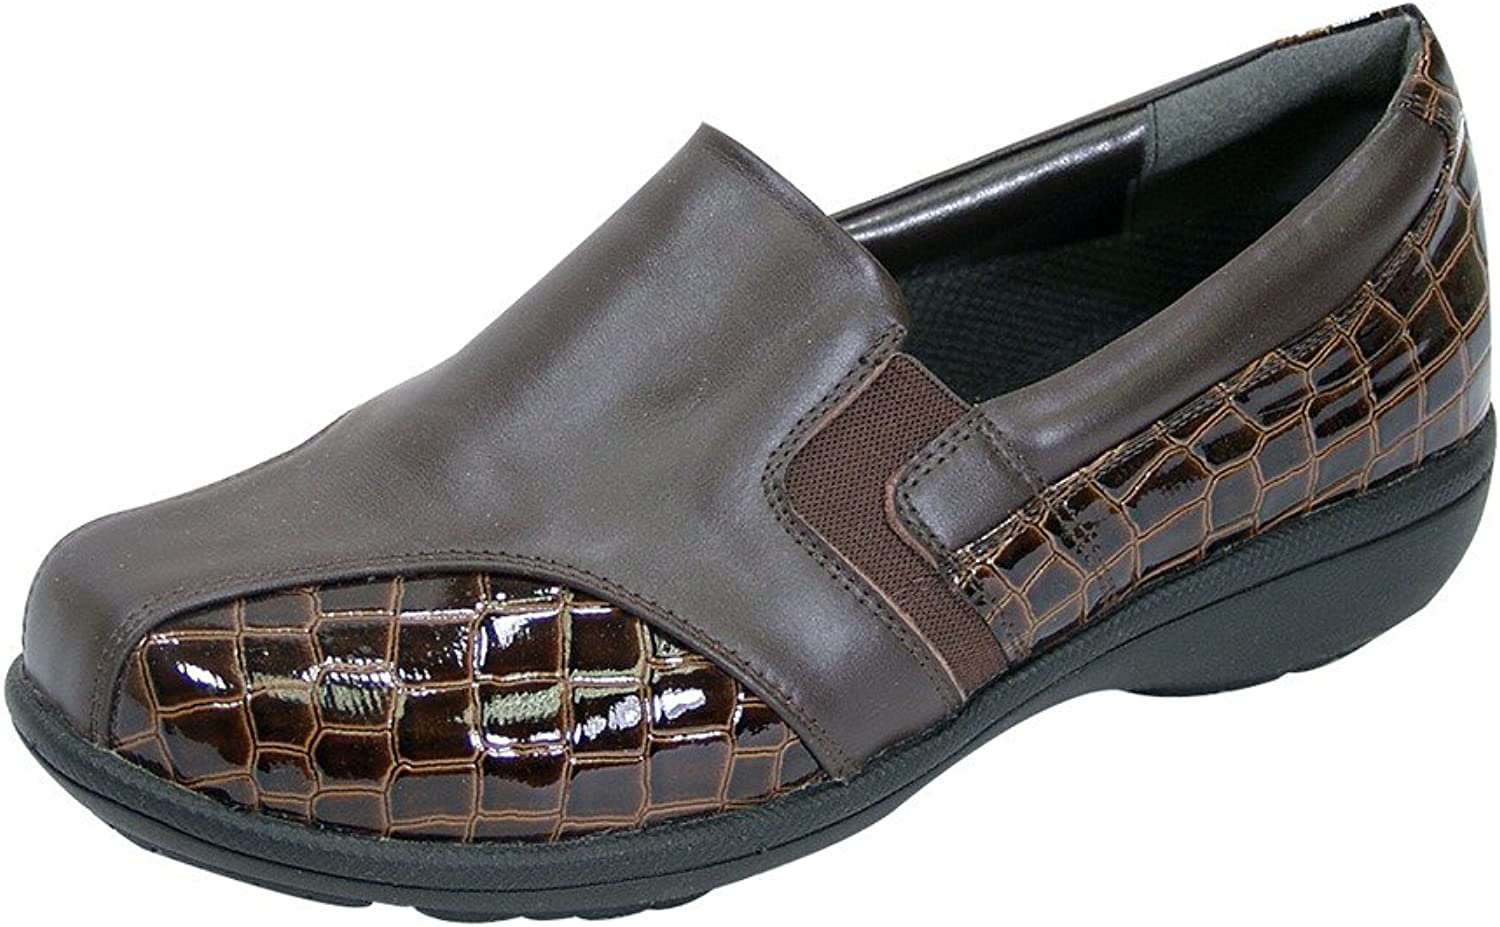 Peerage FIC Agatha Women Extra Wide Width Dress Loafer Brown 8.5